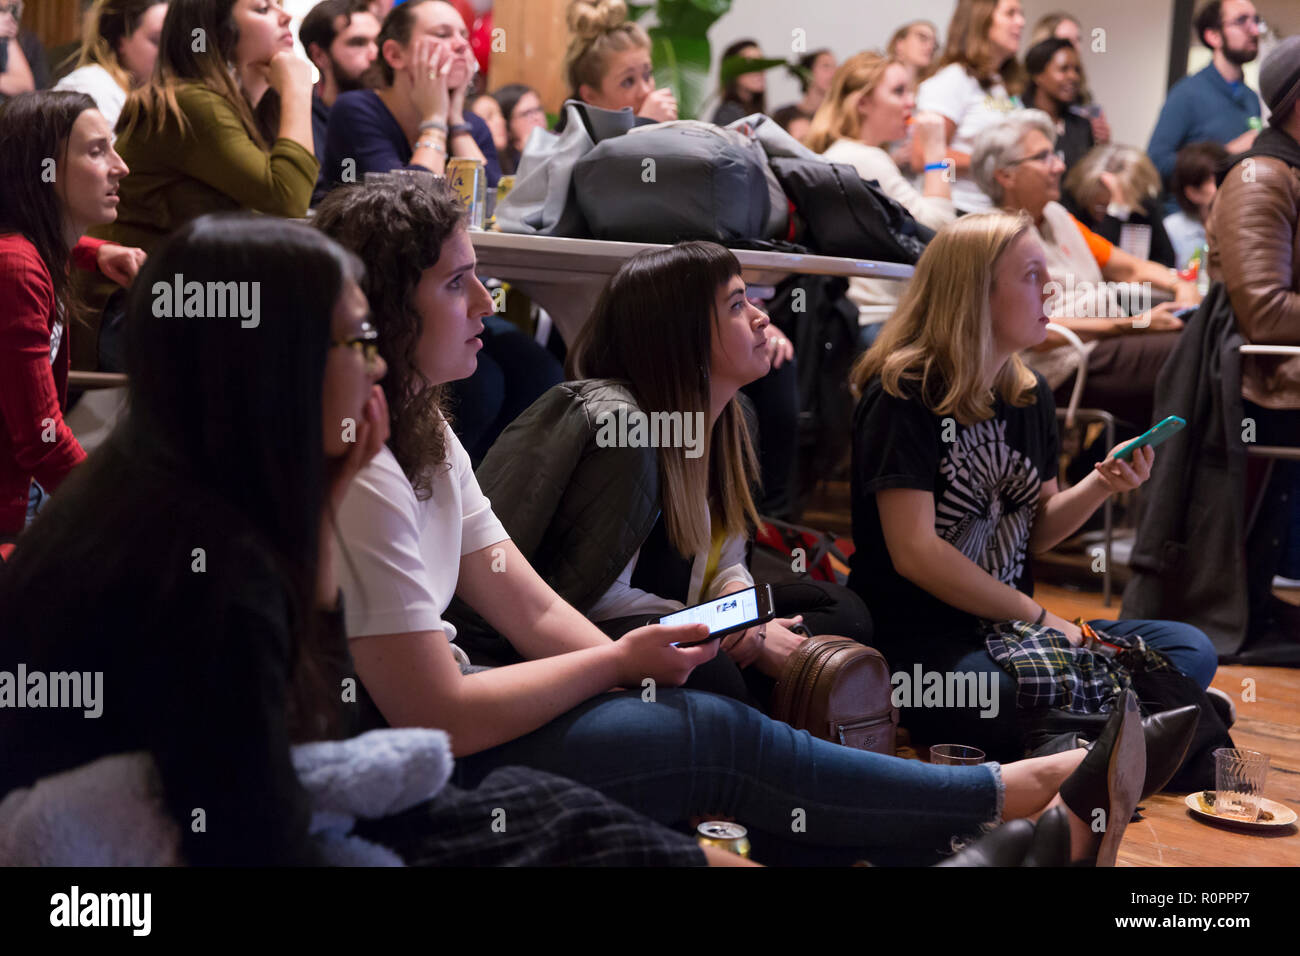 """Seattle, Washington: Supporters quietly watch live results at the election night party, """"She Came, She Saw, She F*ing Voted"""", at The Riveter in Capitol Hill. The gathering was a fundraiser for She Should Run, a non-partisan organization supporting women leaders considering a future run for office. Credit: Paul Christian Gordon/Alamy Live News - Stock Image"""